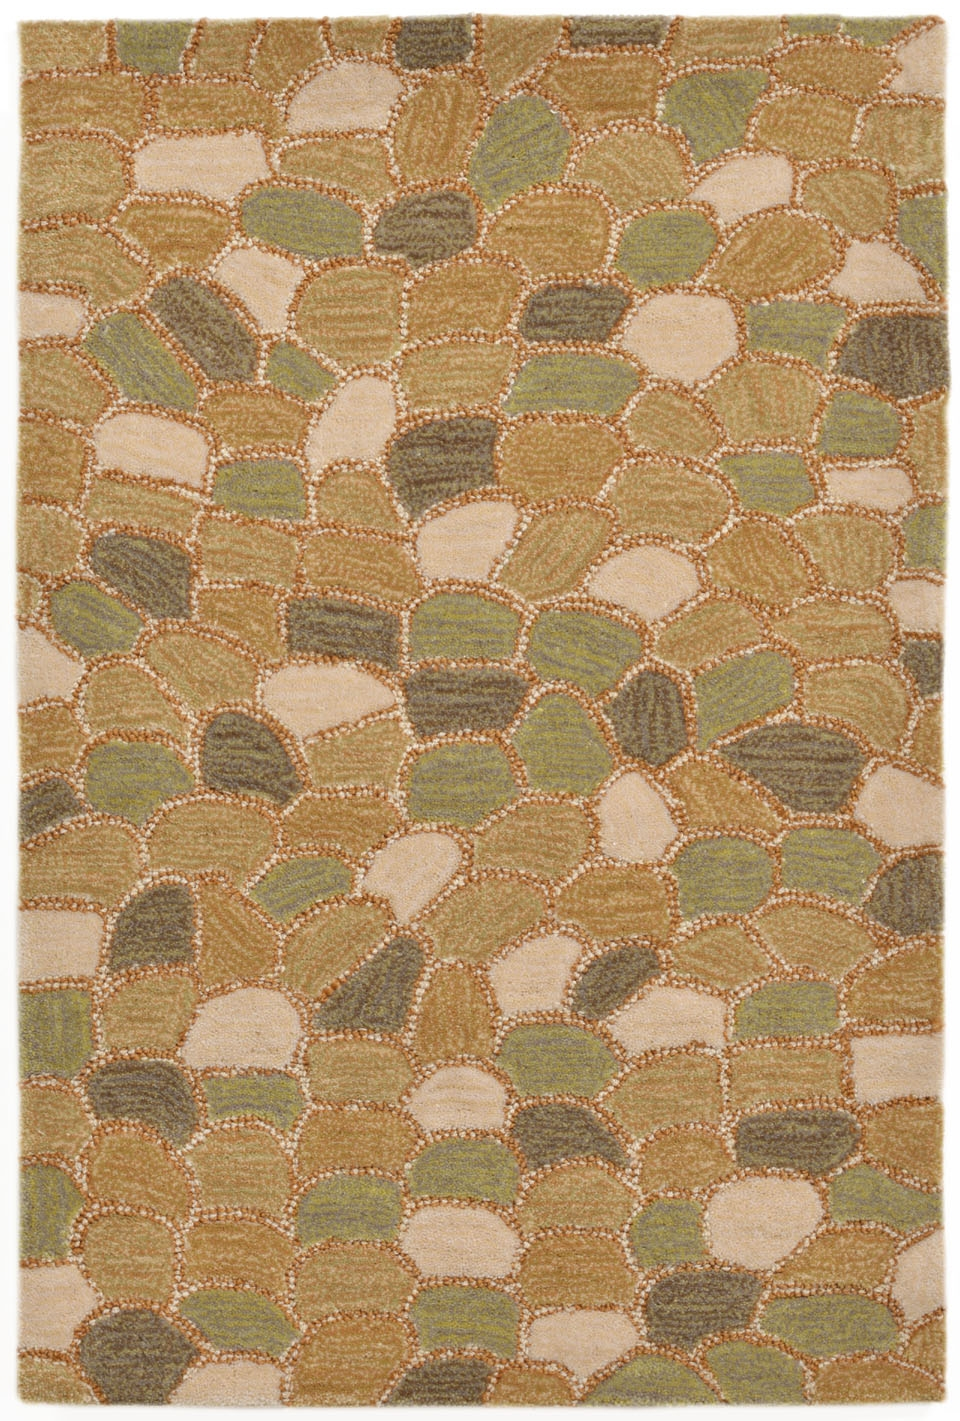 Trans-Ocean Spello 1965/03 Pebbles Blue Area Rug